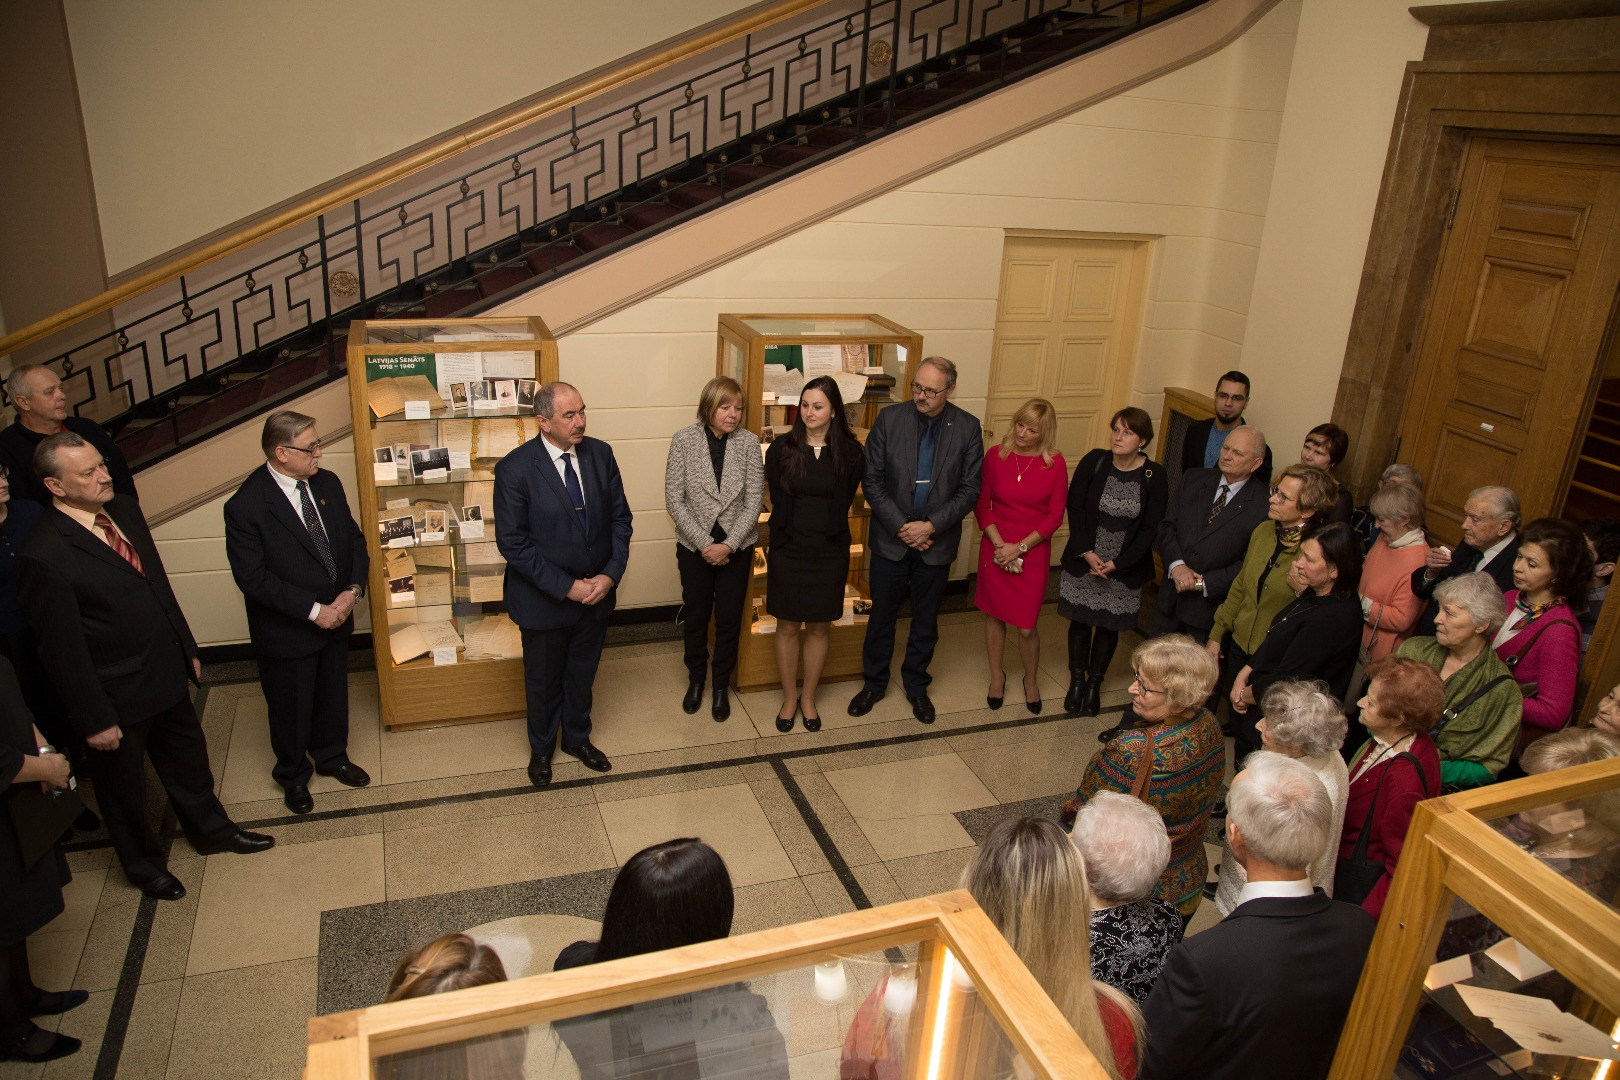 19.12.2017. Exhibition about the Senate of Latvia at the Supreme Court